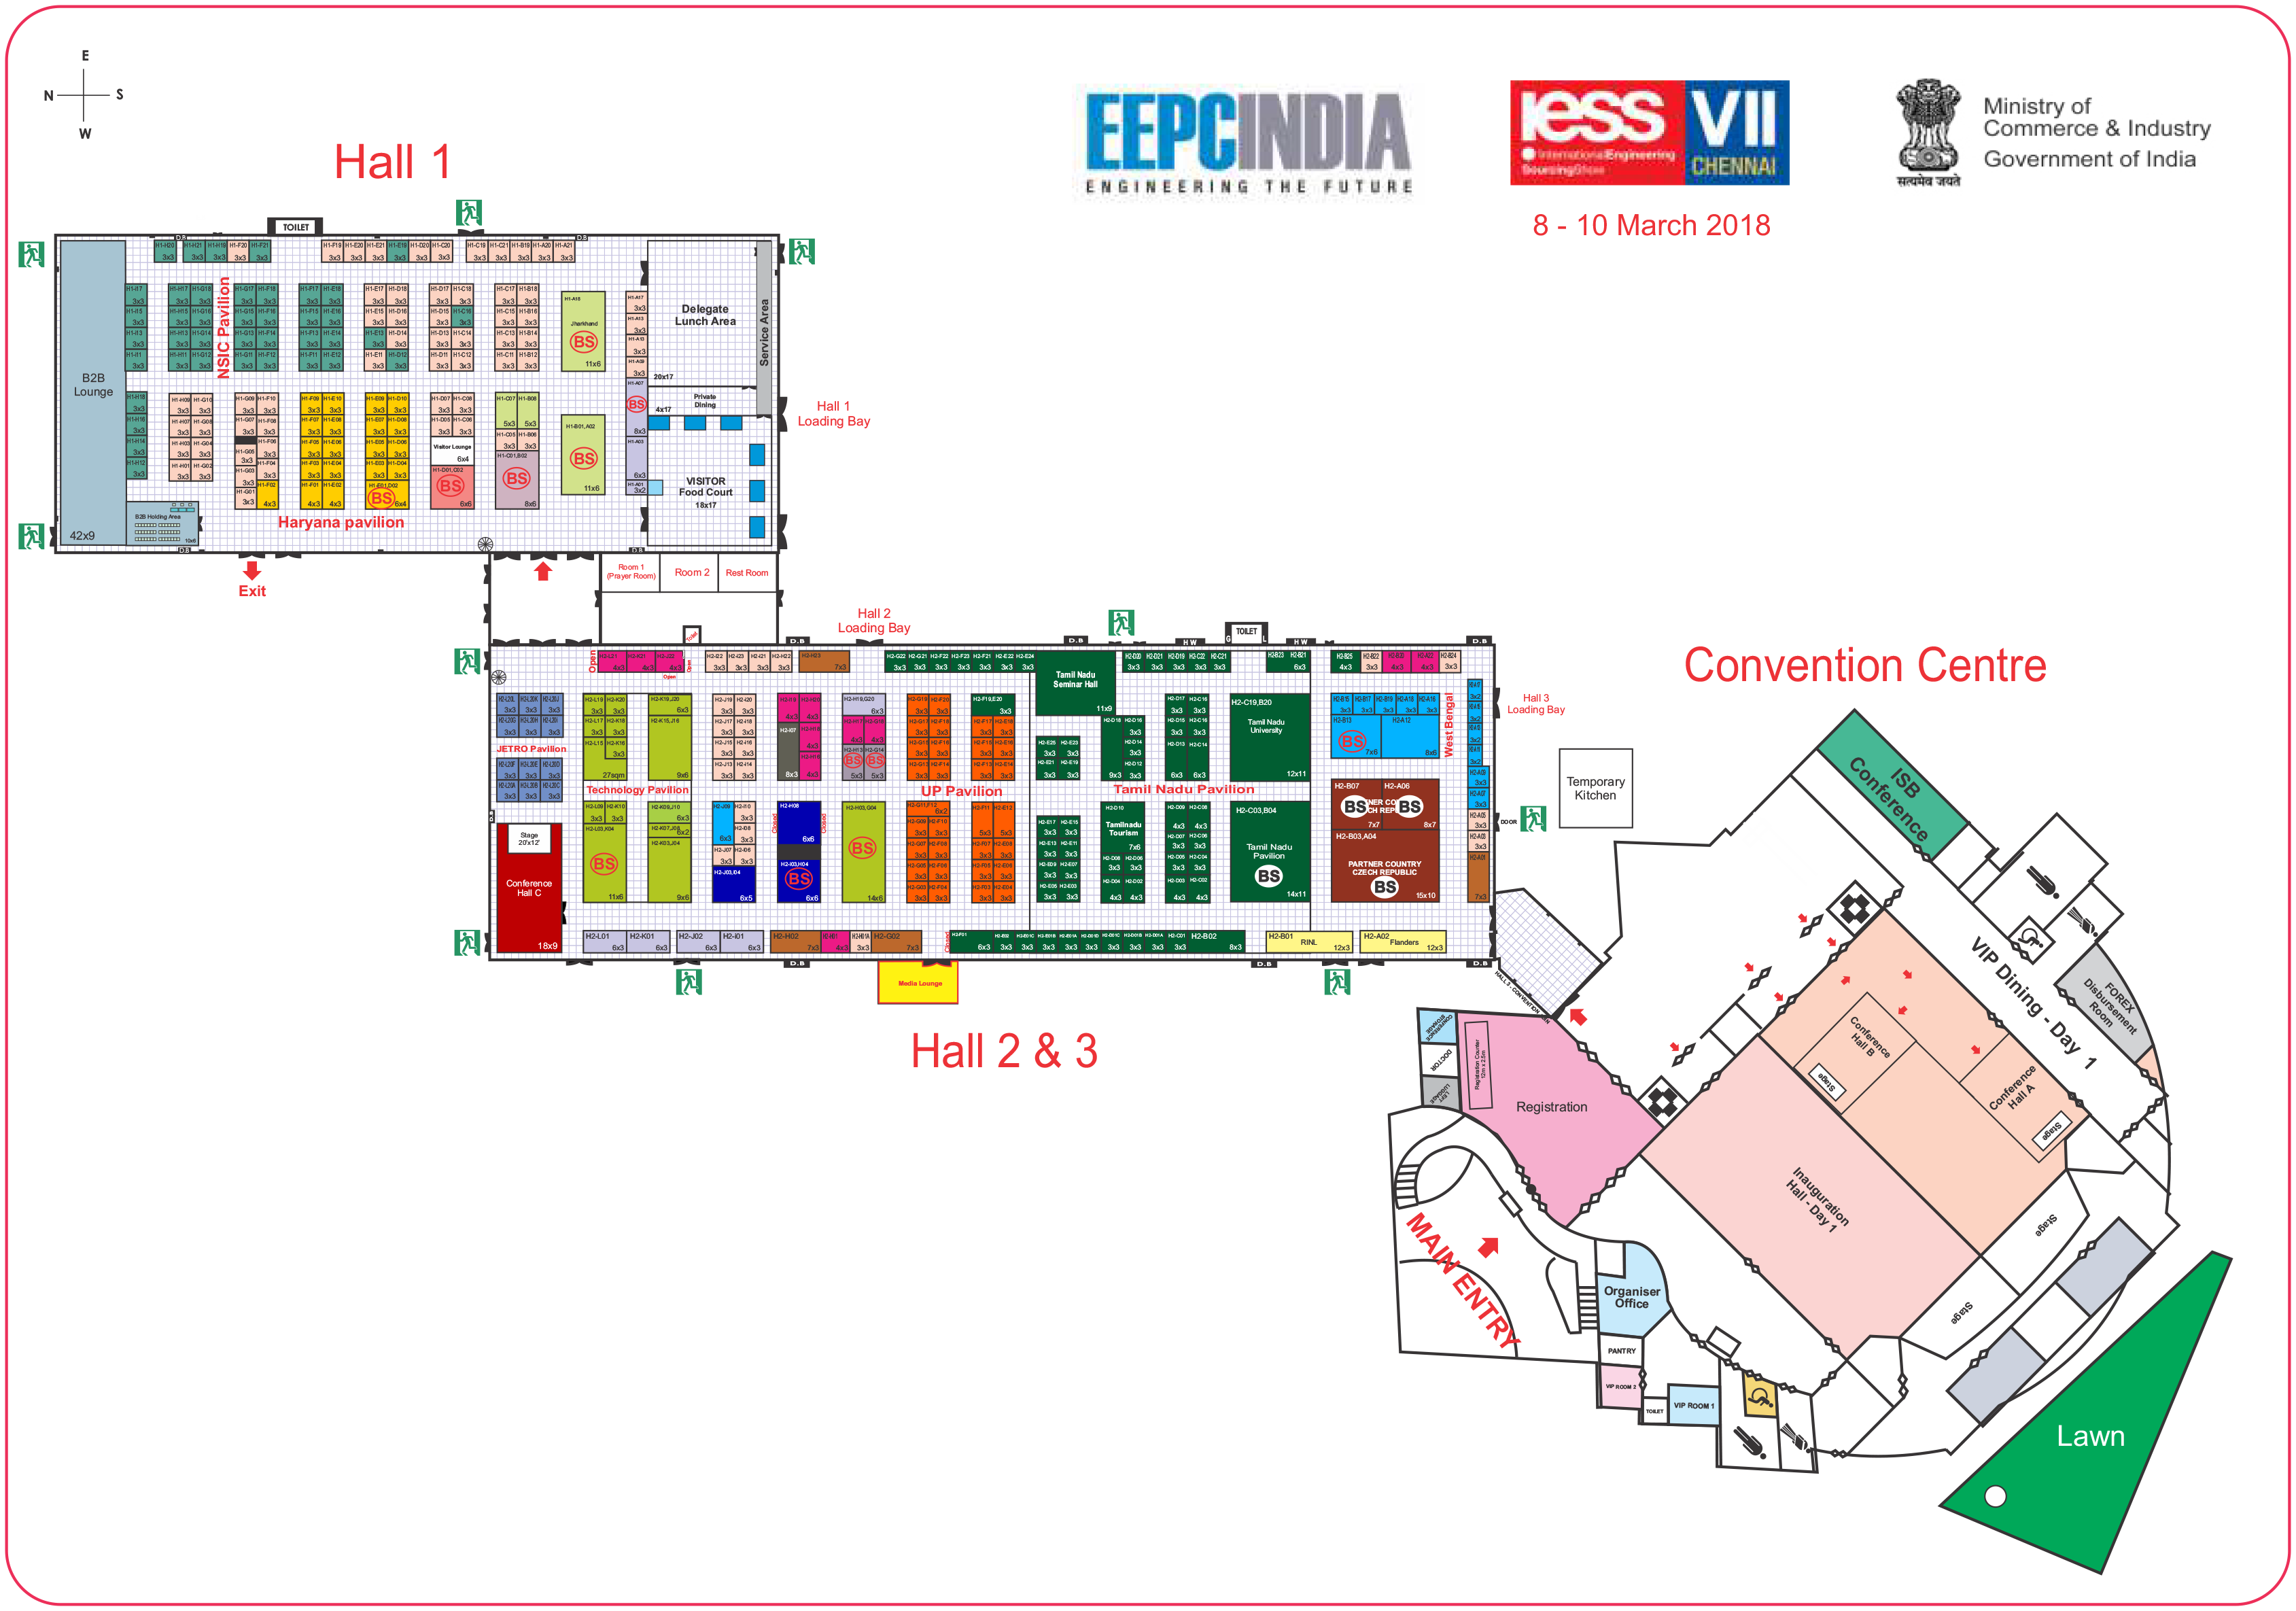 IESS VII Venue Layout